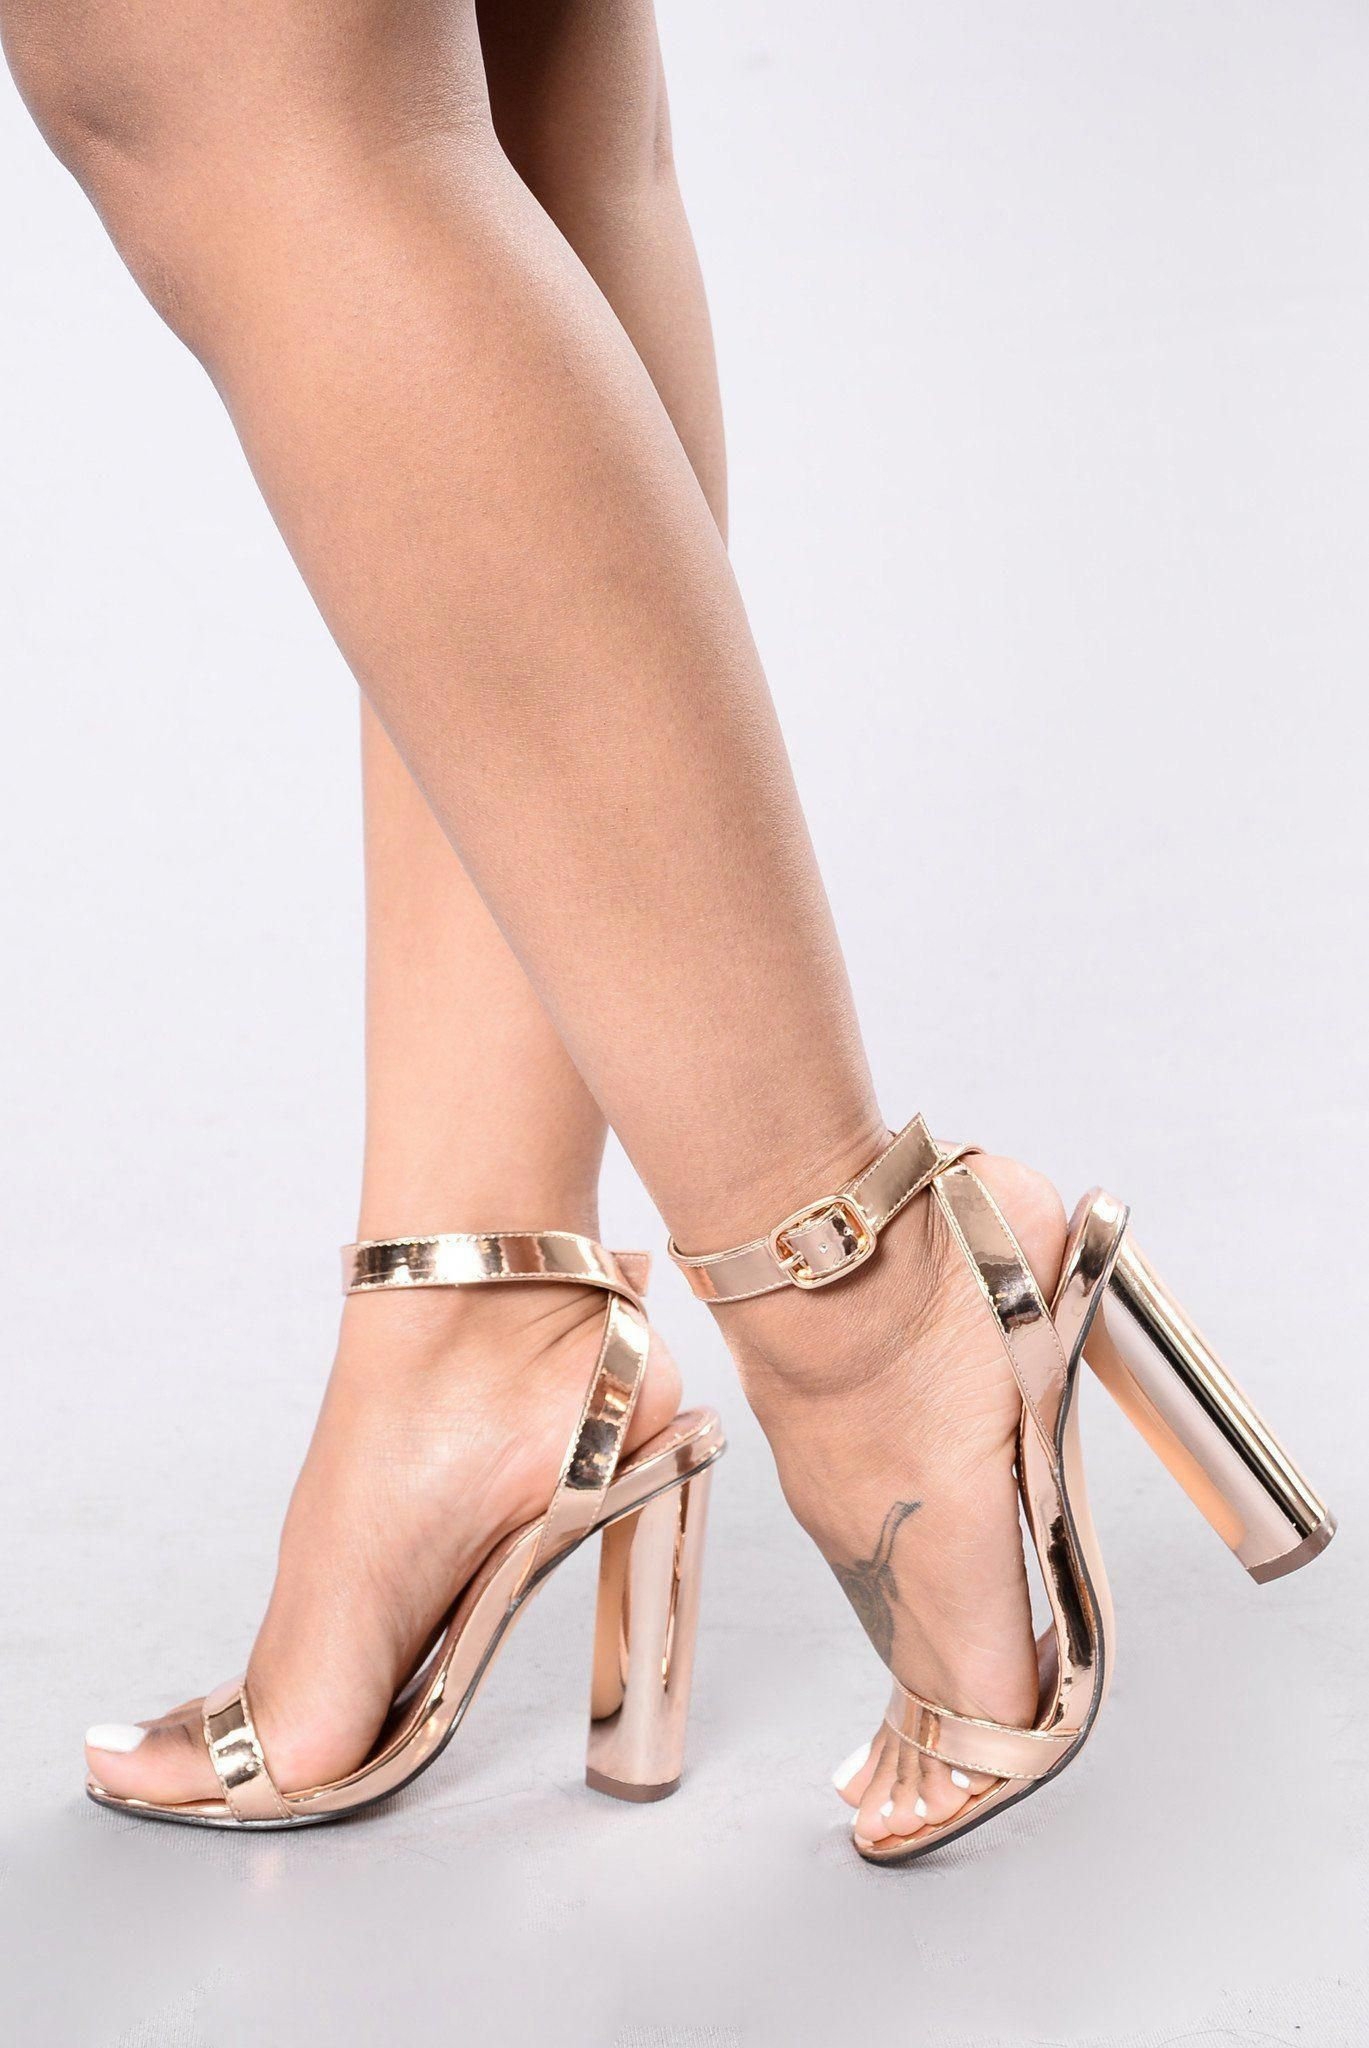 800bf93b33f Available in Rose Gold and Silver Single Sole Heel Adjustable Buckle  Metallic Round Heel Patent Leather Upper